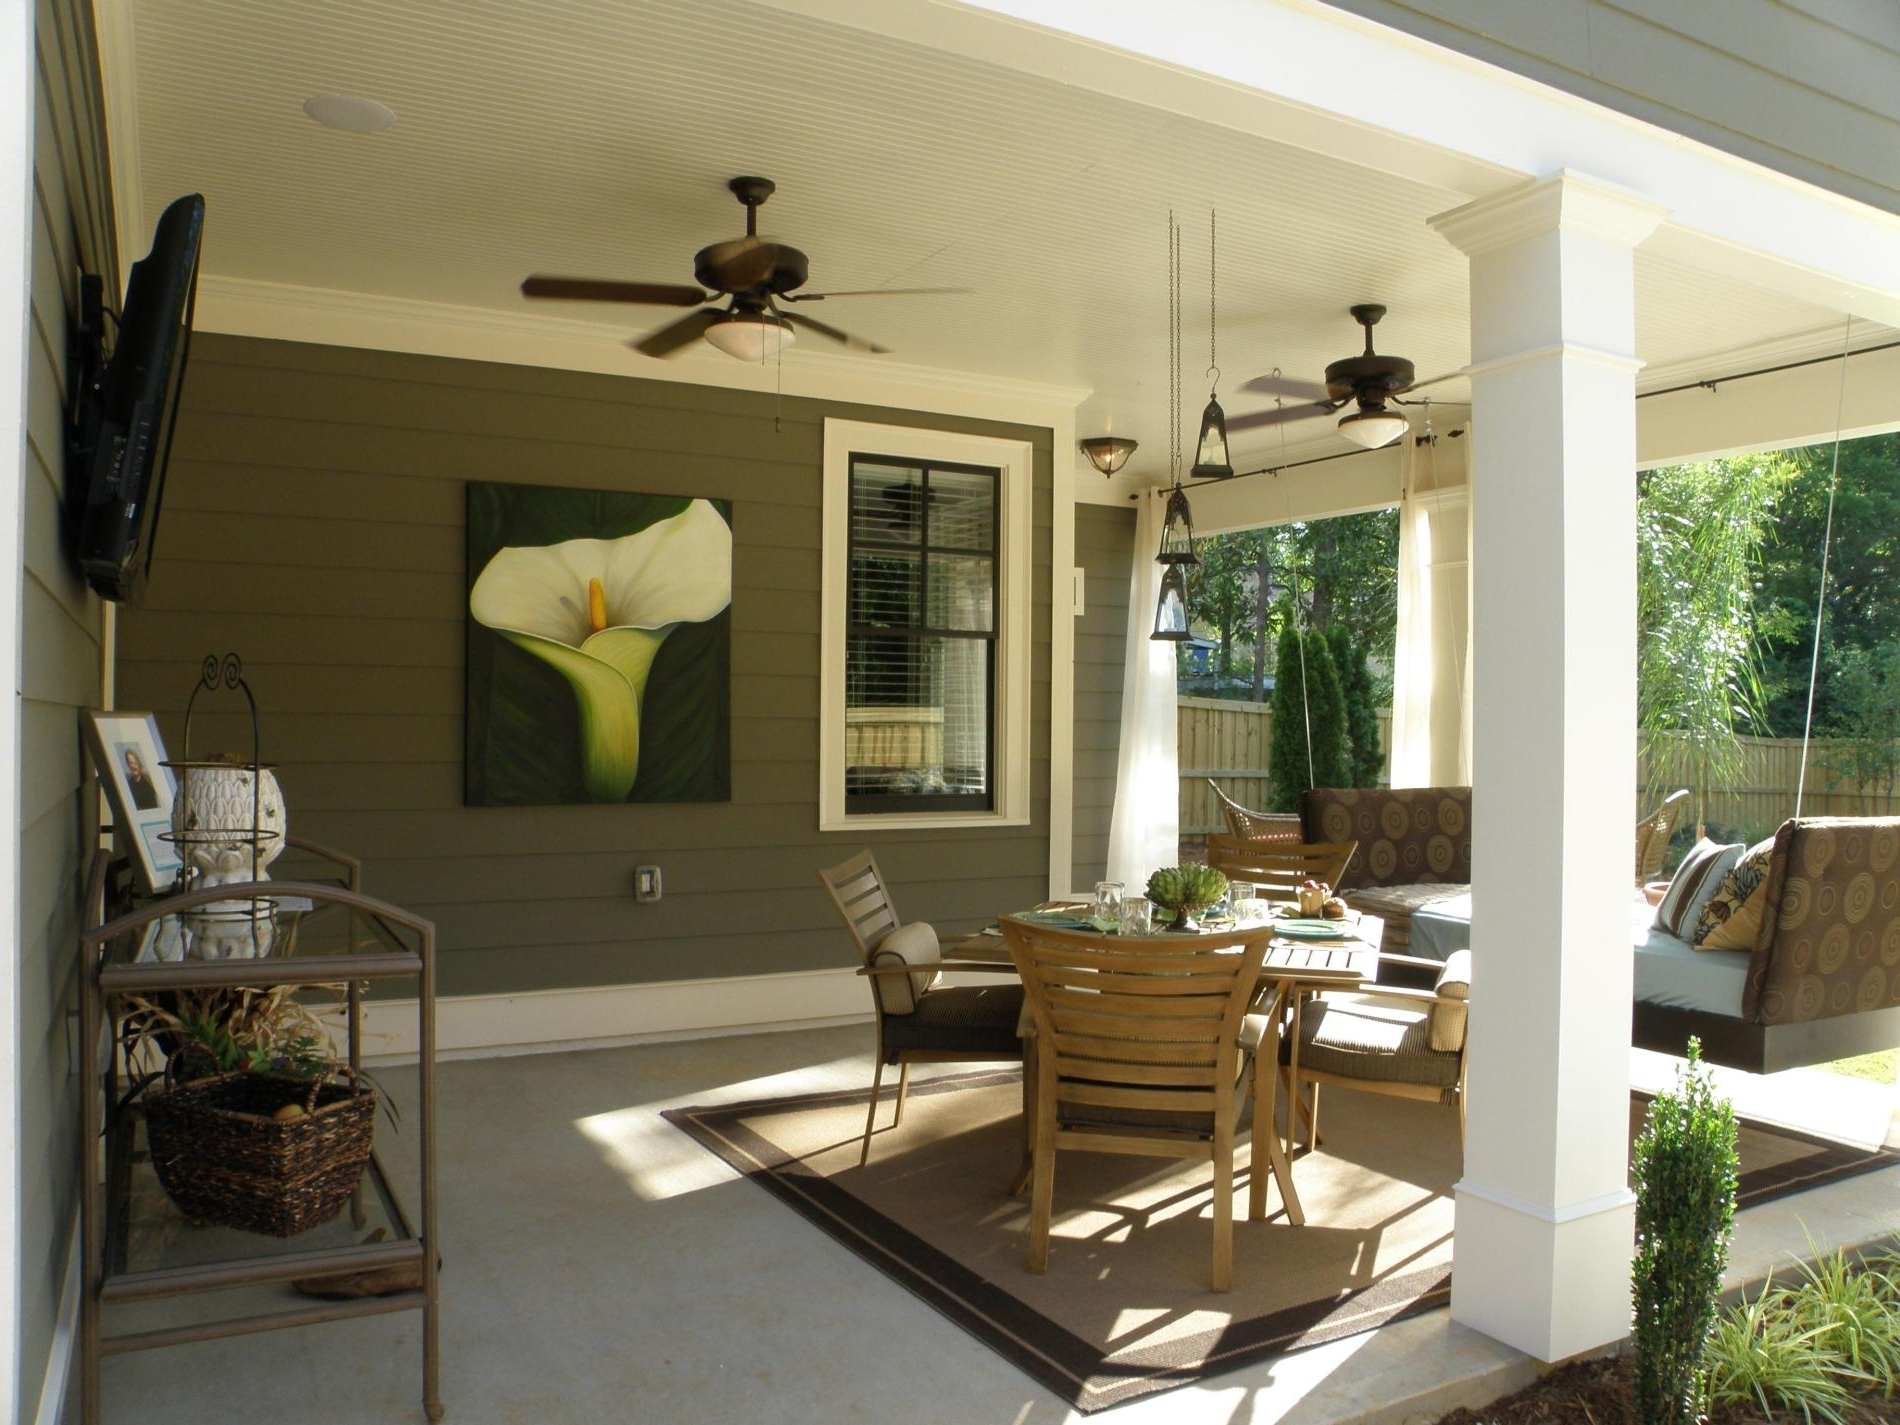 Best And Newest L S Photo Guide To Outdoor Patio Lighting Ideas Lights And Ceiling With Regard To Outdoor Ceiling Lights For Patio (View 8 of 20)